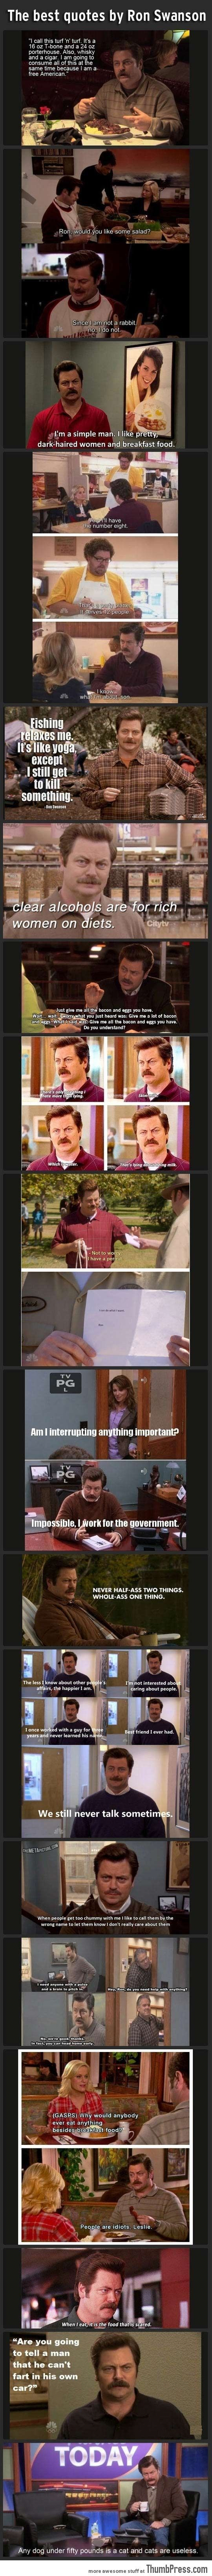 Ron Swanson is a real man.